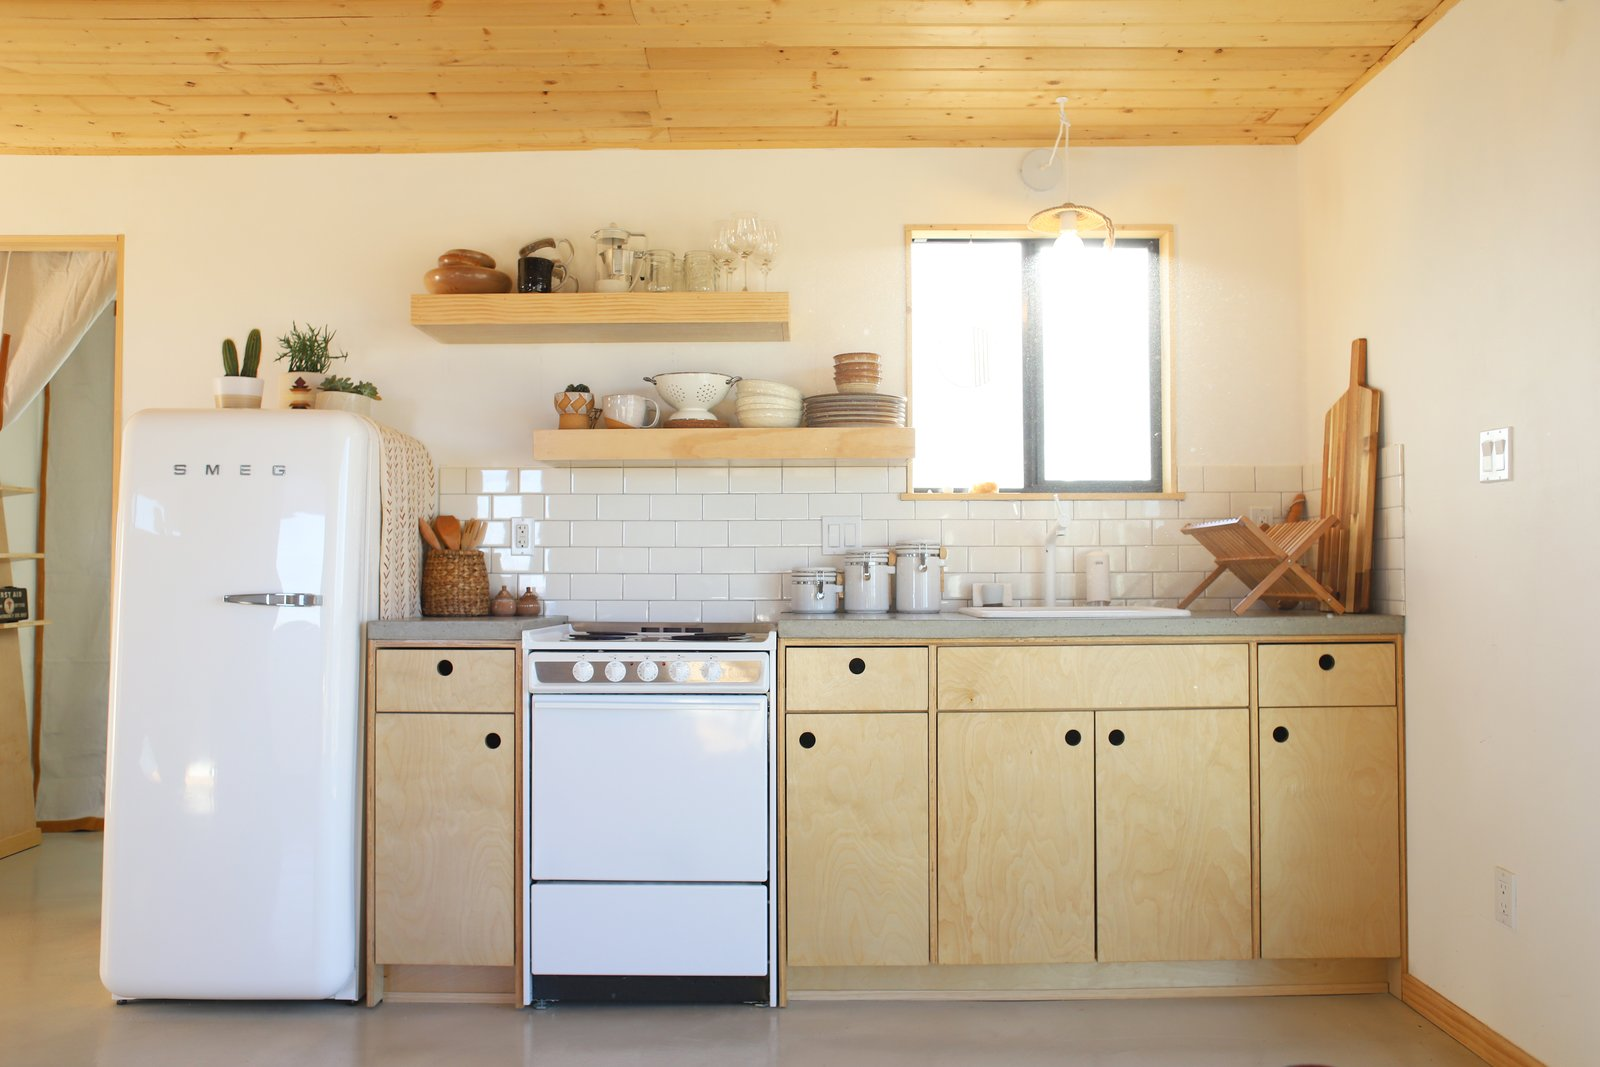 The petite open kitchen is....